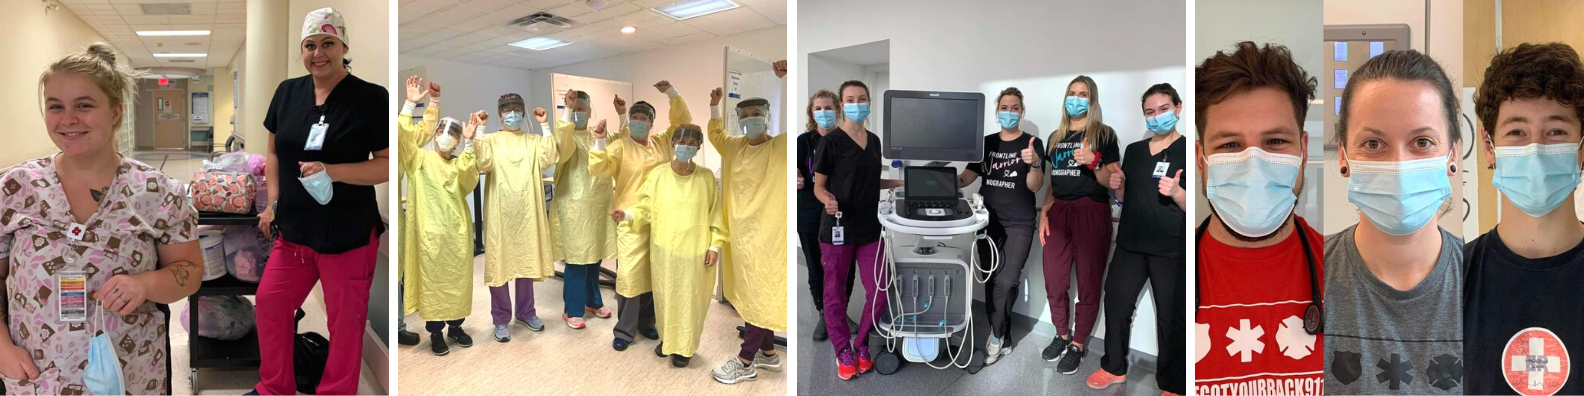 various staff in differing areas of the hospital